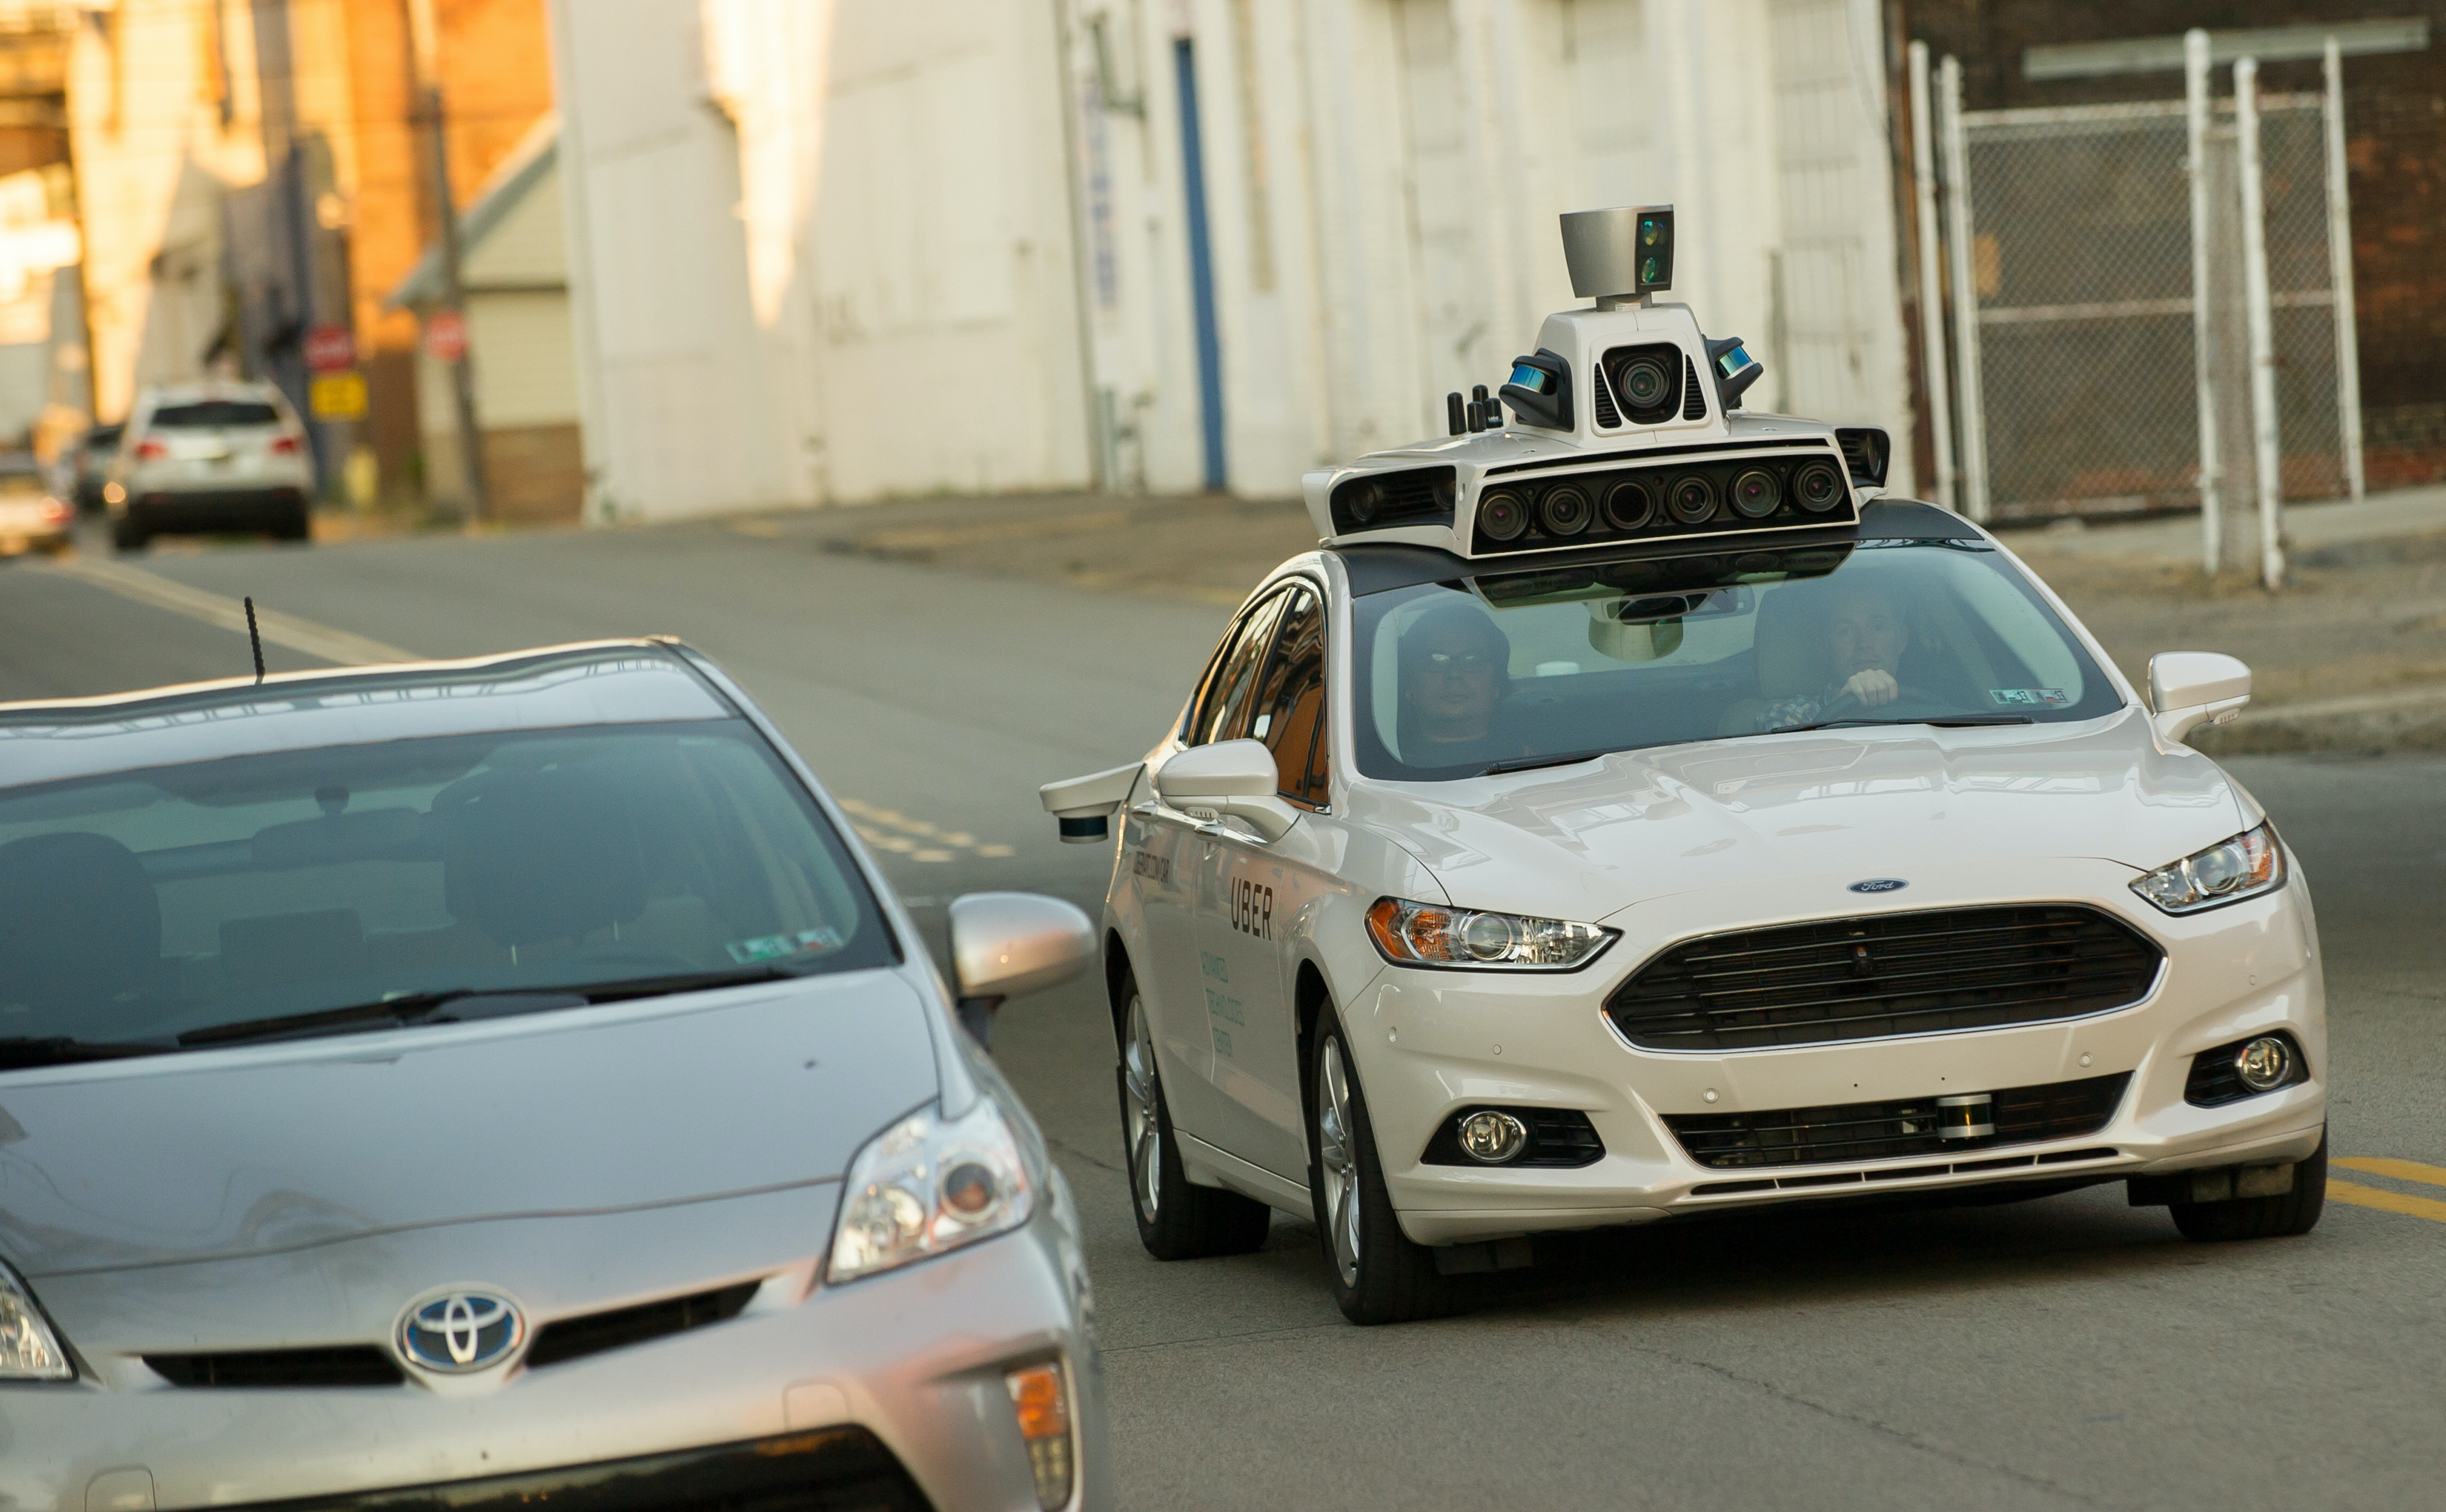 An Uber driverless Ford Fusion drives down Smallman Street on September, 22, 2016 in Pittsburgh, Pennsylvania.